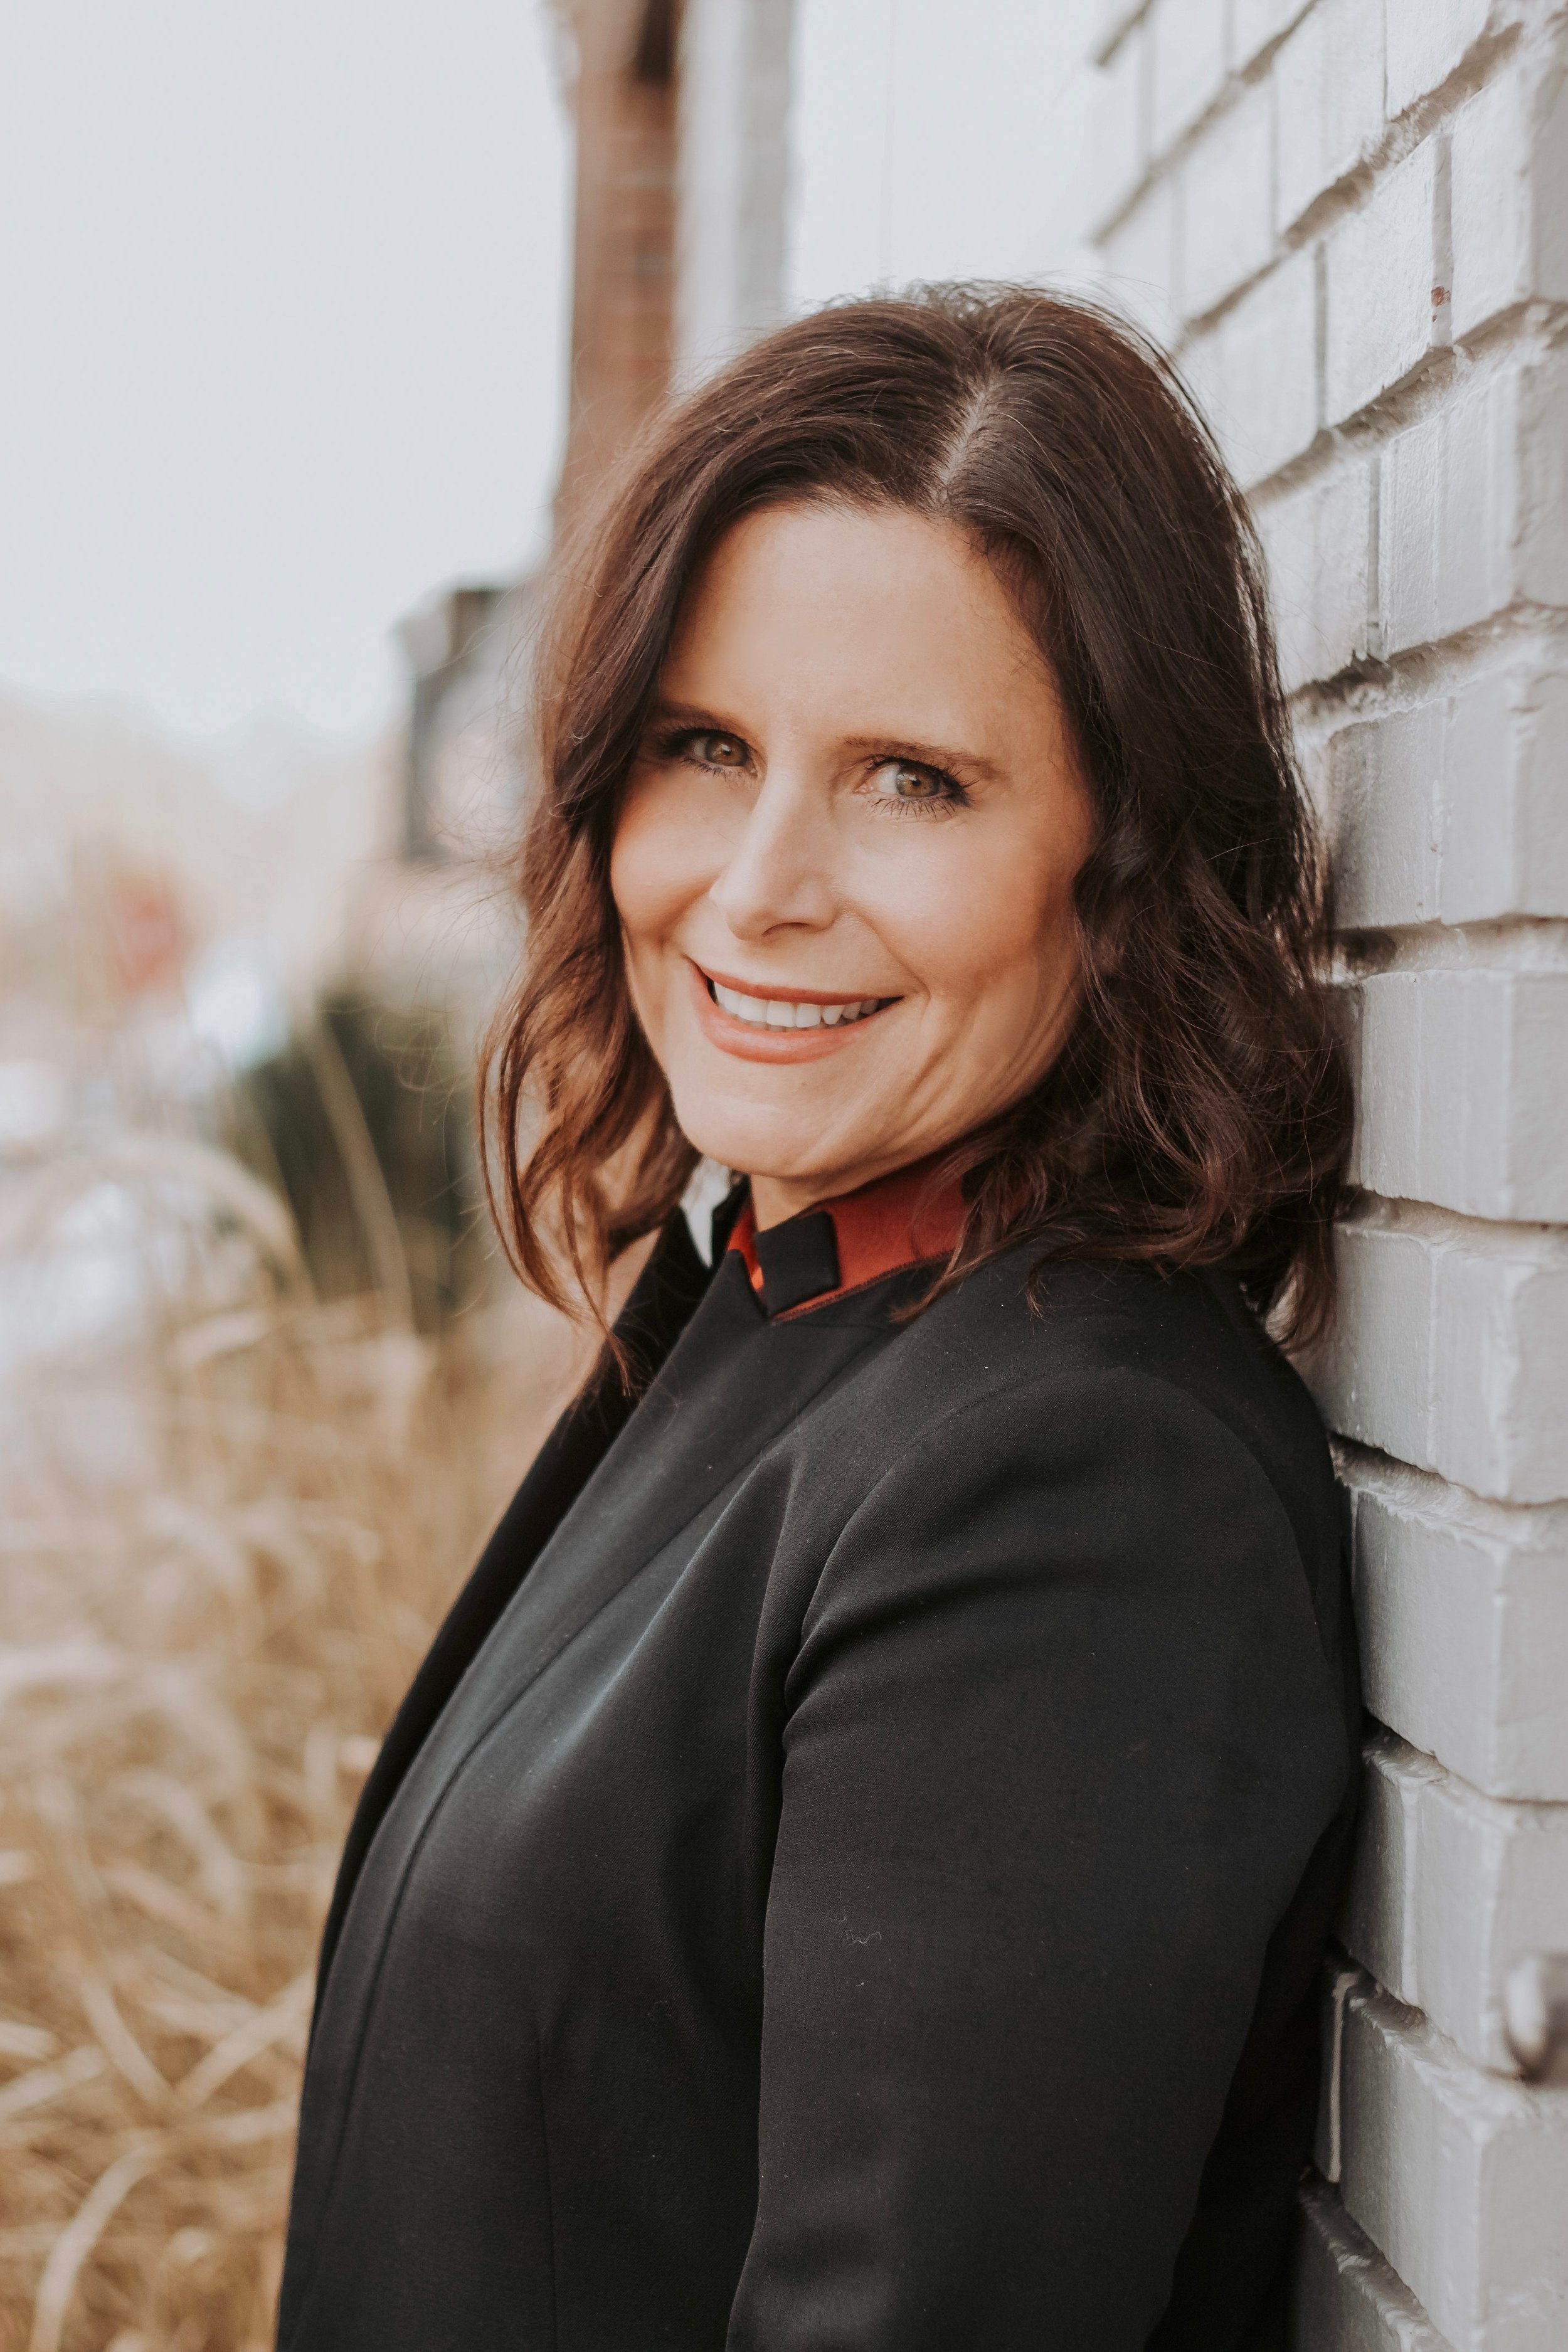 Beth Perro-Jarvis - Marketing: Journalism degree from sturdy Big Ten school and many years at Fallon as Global Group Account Director and head of the agency's Trend Unit. Plus a few more agency gigs that all make for some hard-to-believe war stories.Life: Two sons, two pets, one husband, much beloved family, a great gaggle of girlfriends, loads of enthusiasm, a talent for pie-baking, a penchant for red lipstick and a love of things that simultaneously challenge and bring joy - from snowboarding to Sunday night programming on HBO. Optimism is Beth's secret weapon.